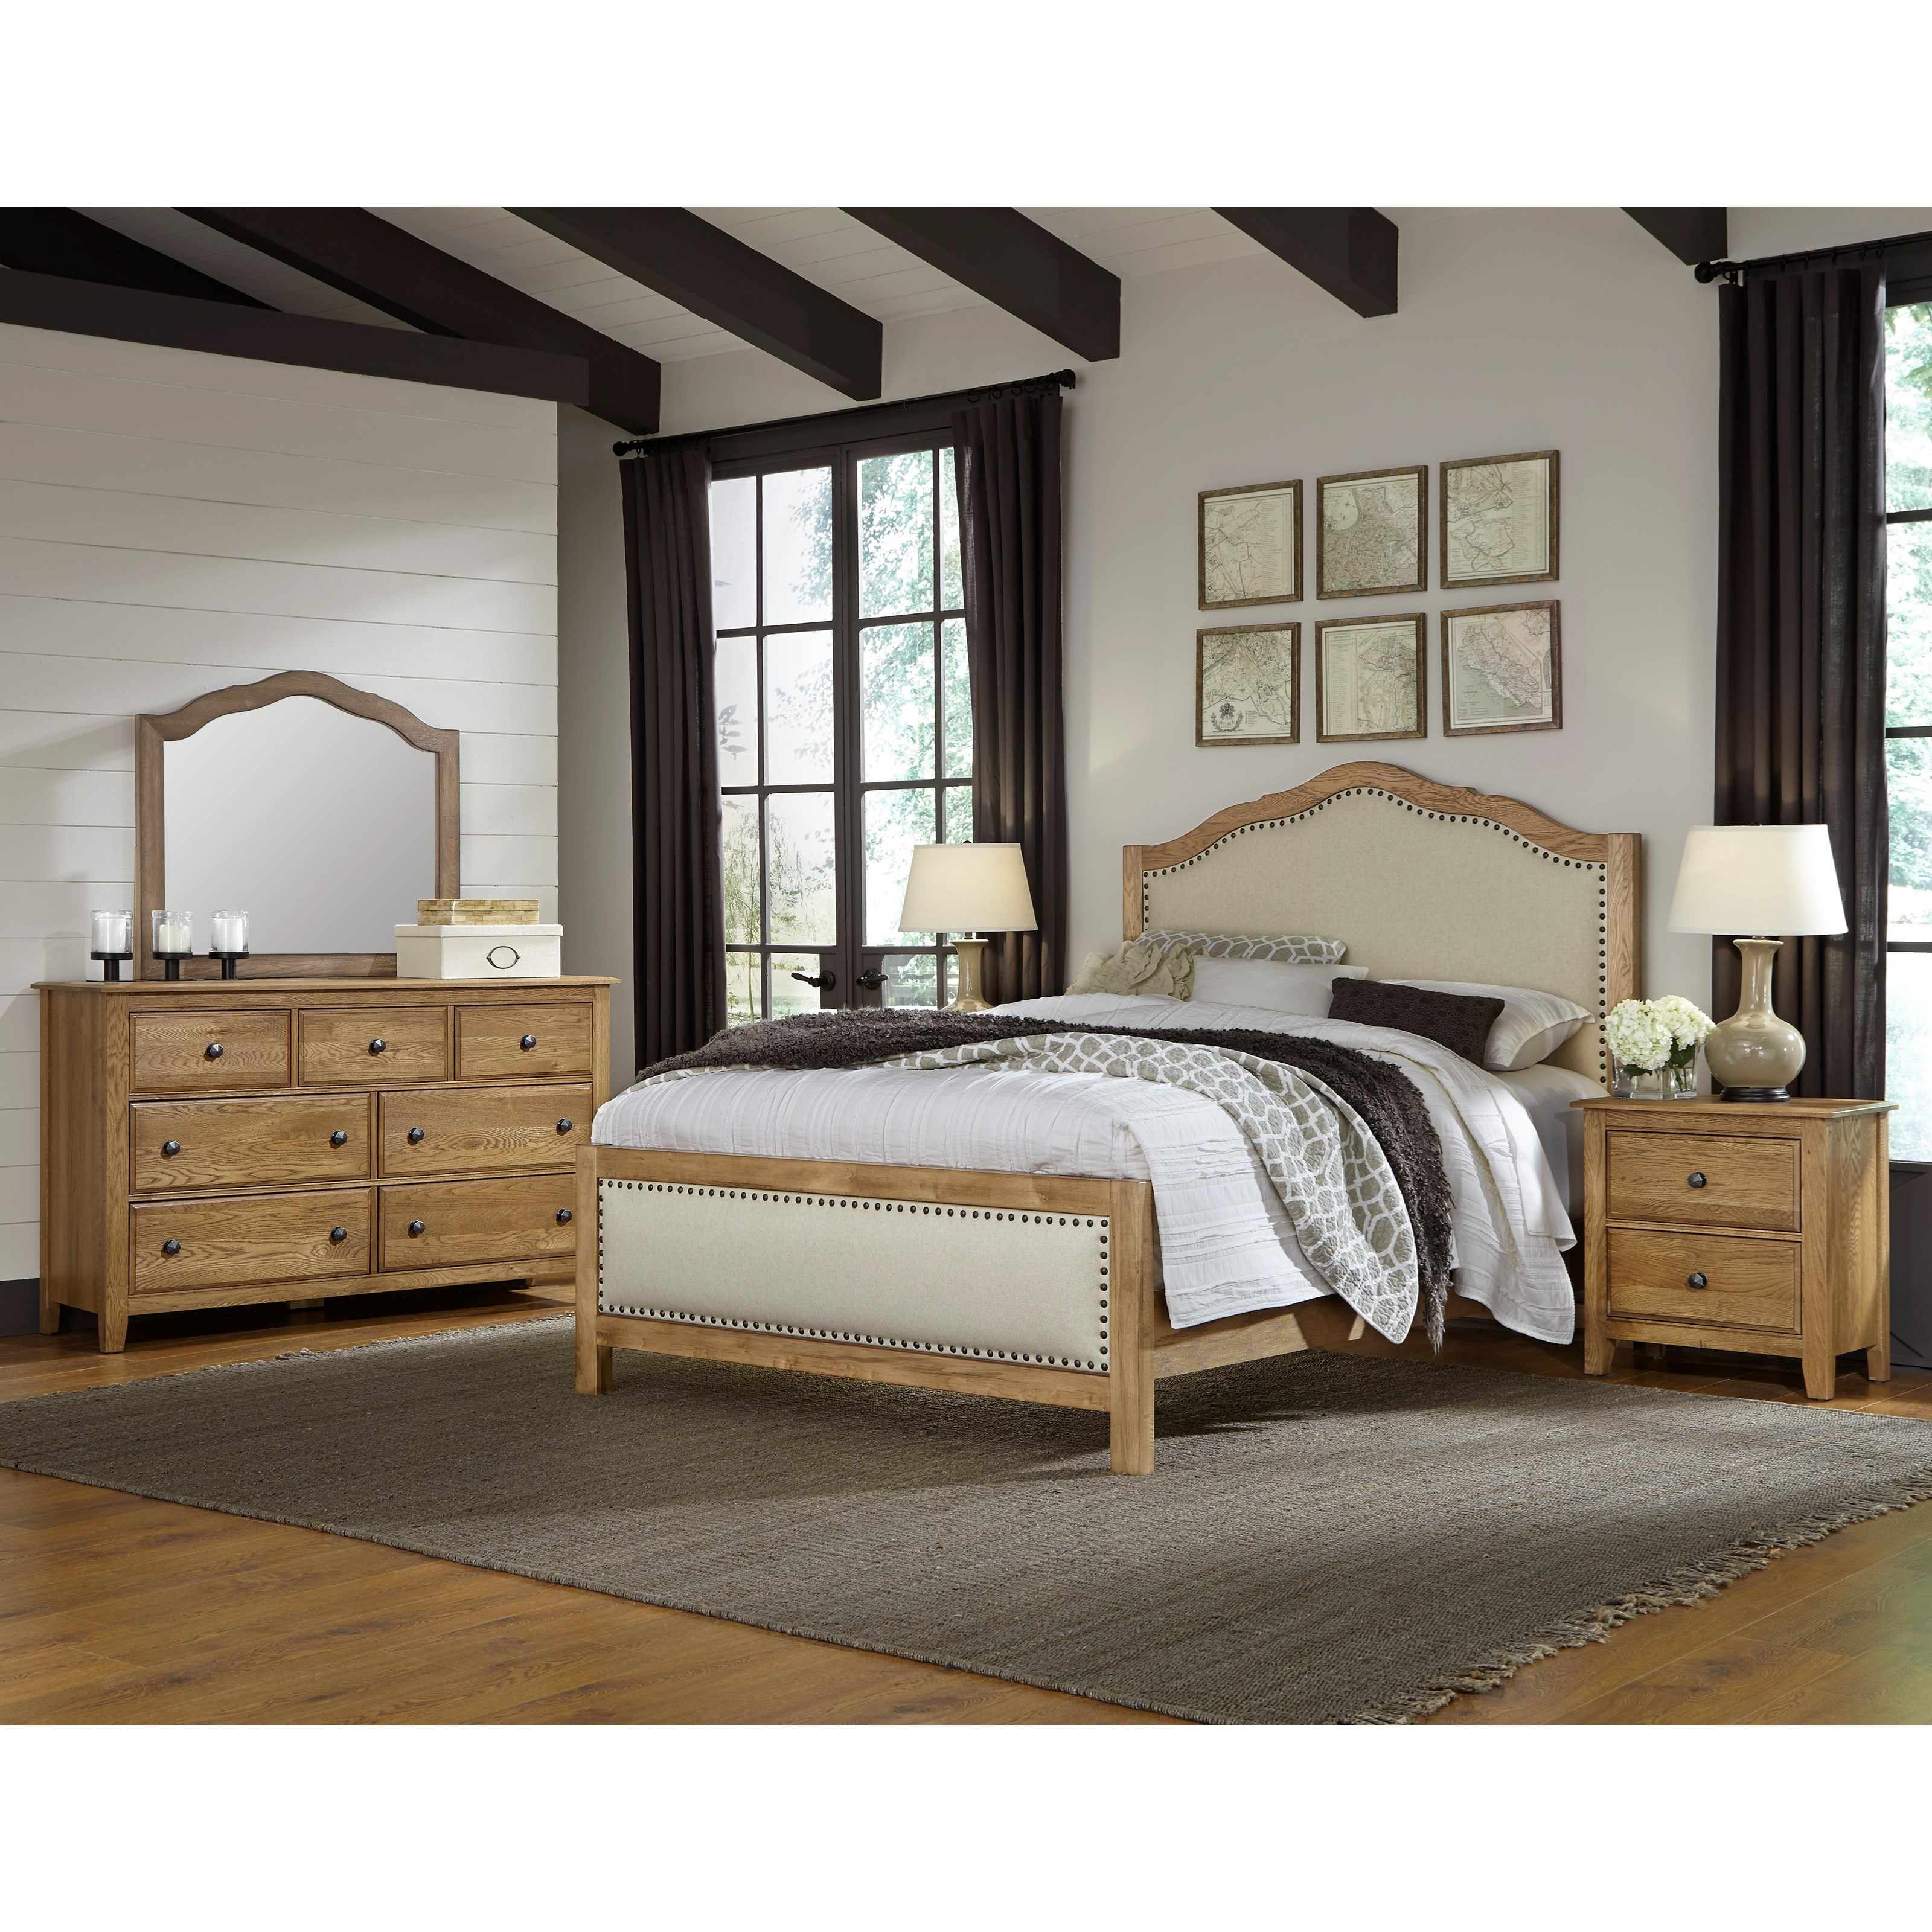 Artisan & Post Artisan Choices King Bedroom Group - Item Number: 105 K Bedroom Group 10